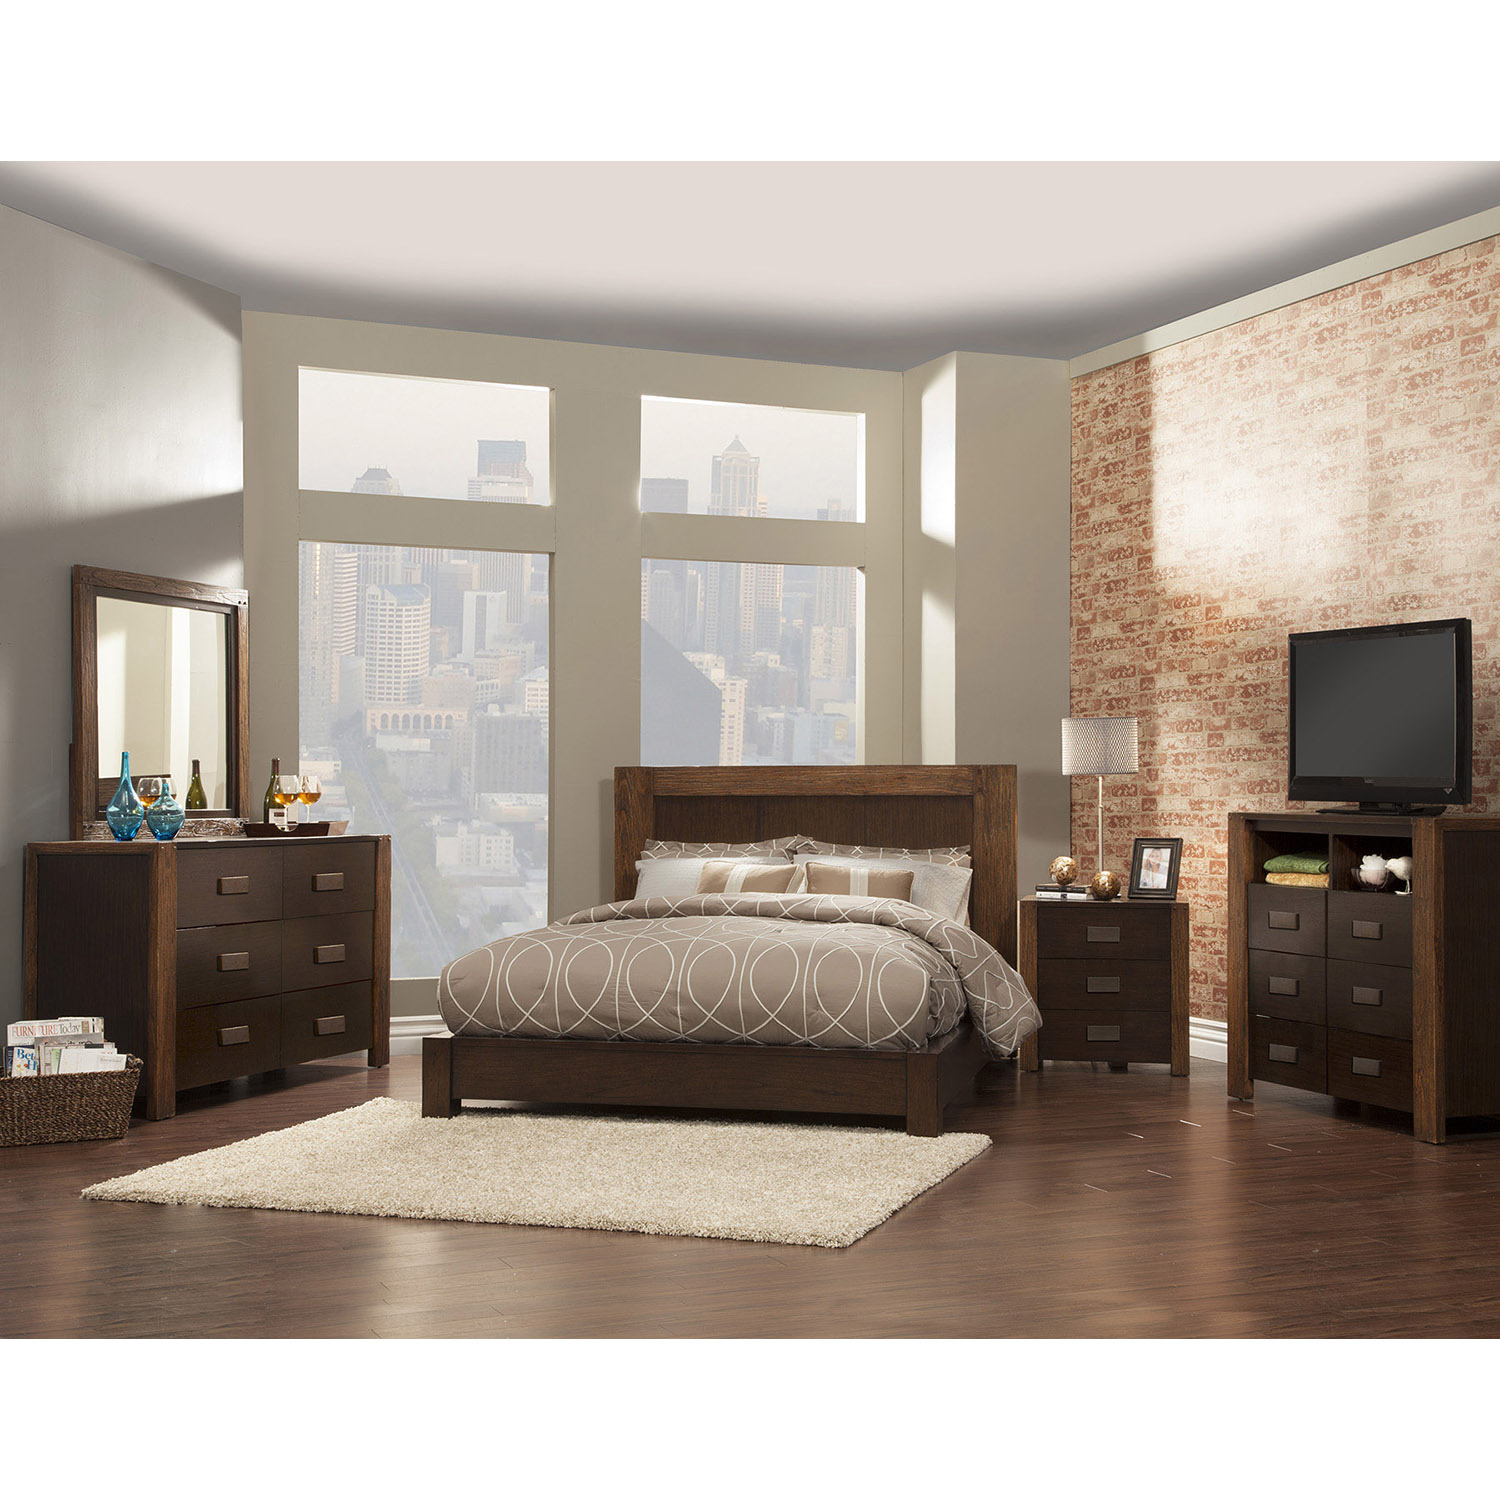 Element 1 Platform Bed - Espresso - ALP-ORI-213-BED